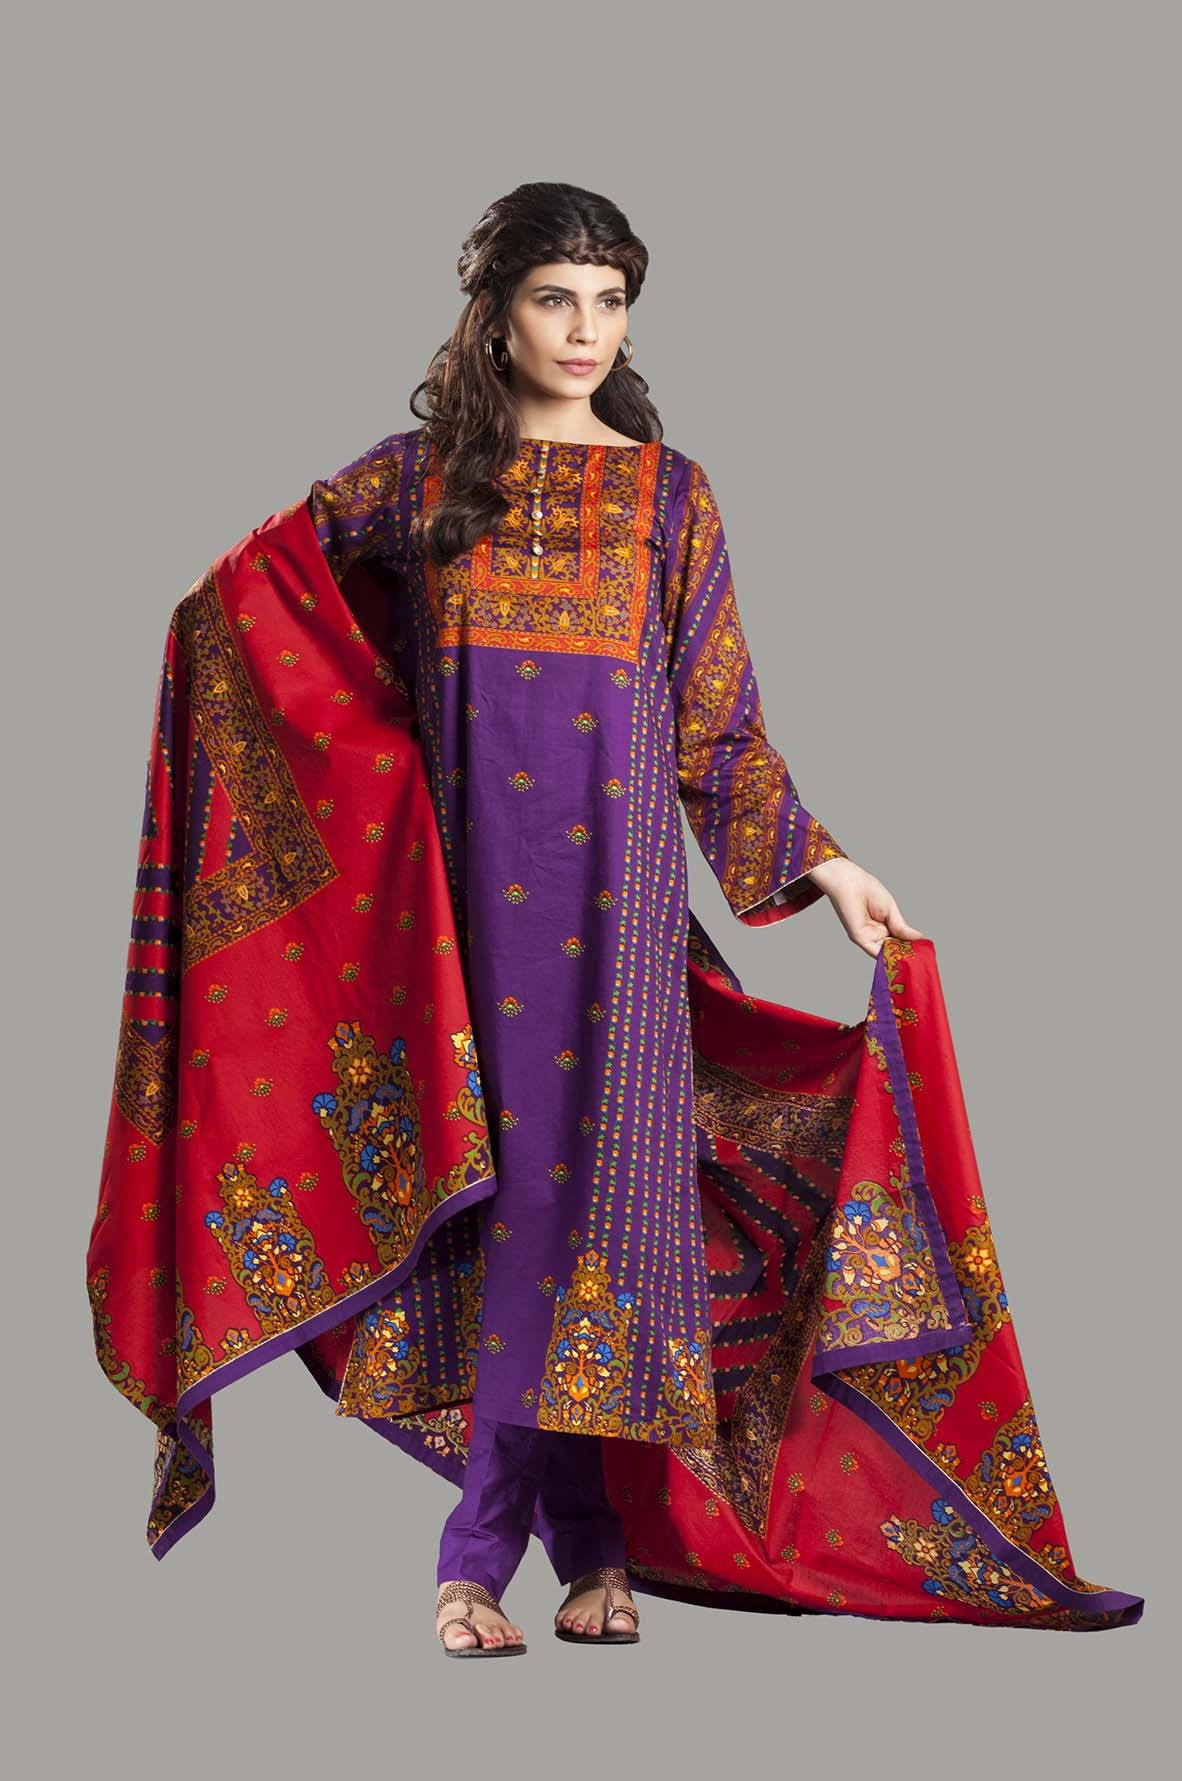 Kayseria Latest Winter Prints Best Shawls & Dresses Cambric Collection 2014-2015 (2)